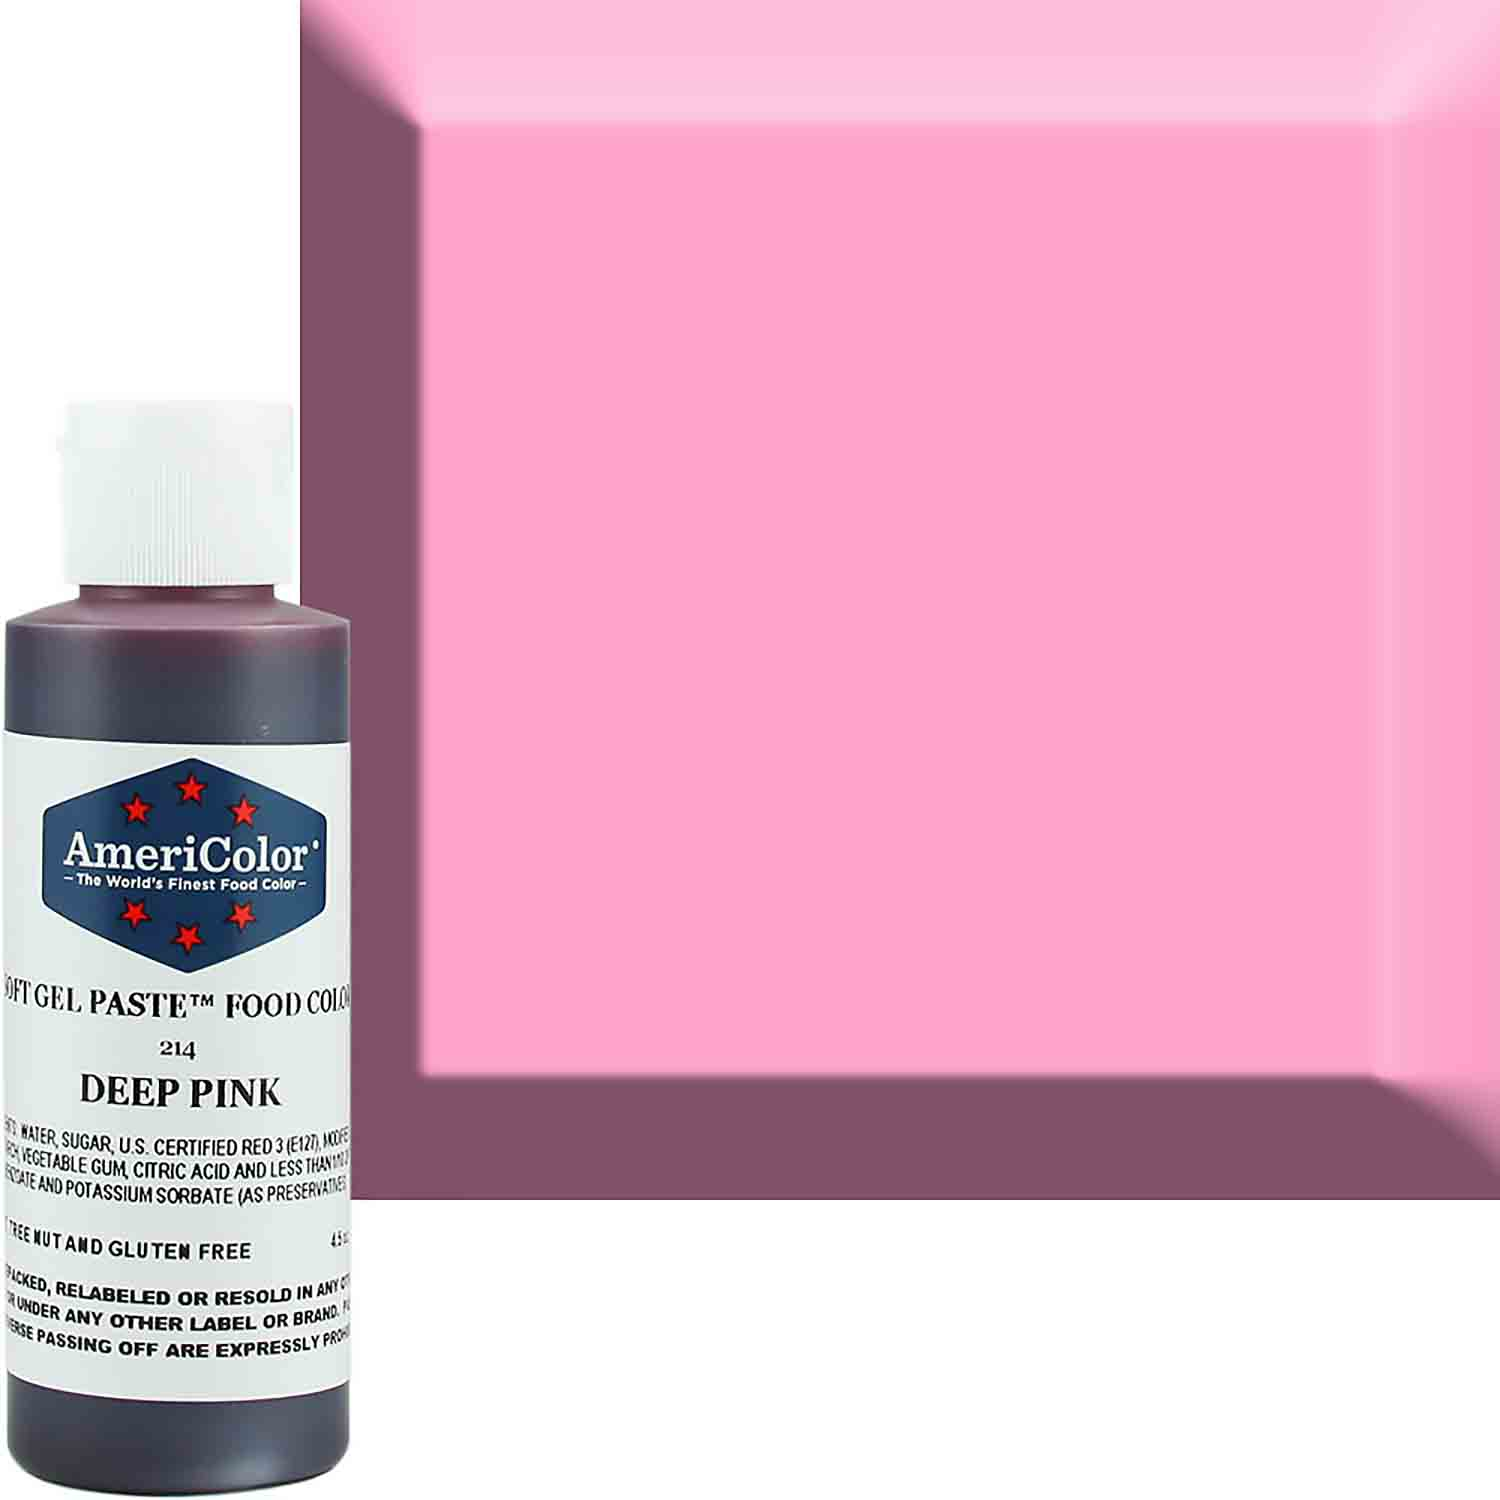 Deep Pink AmeriColor® Soft Gel Paste™ Food Color